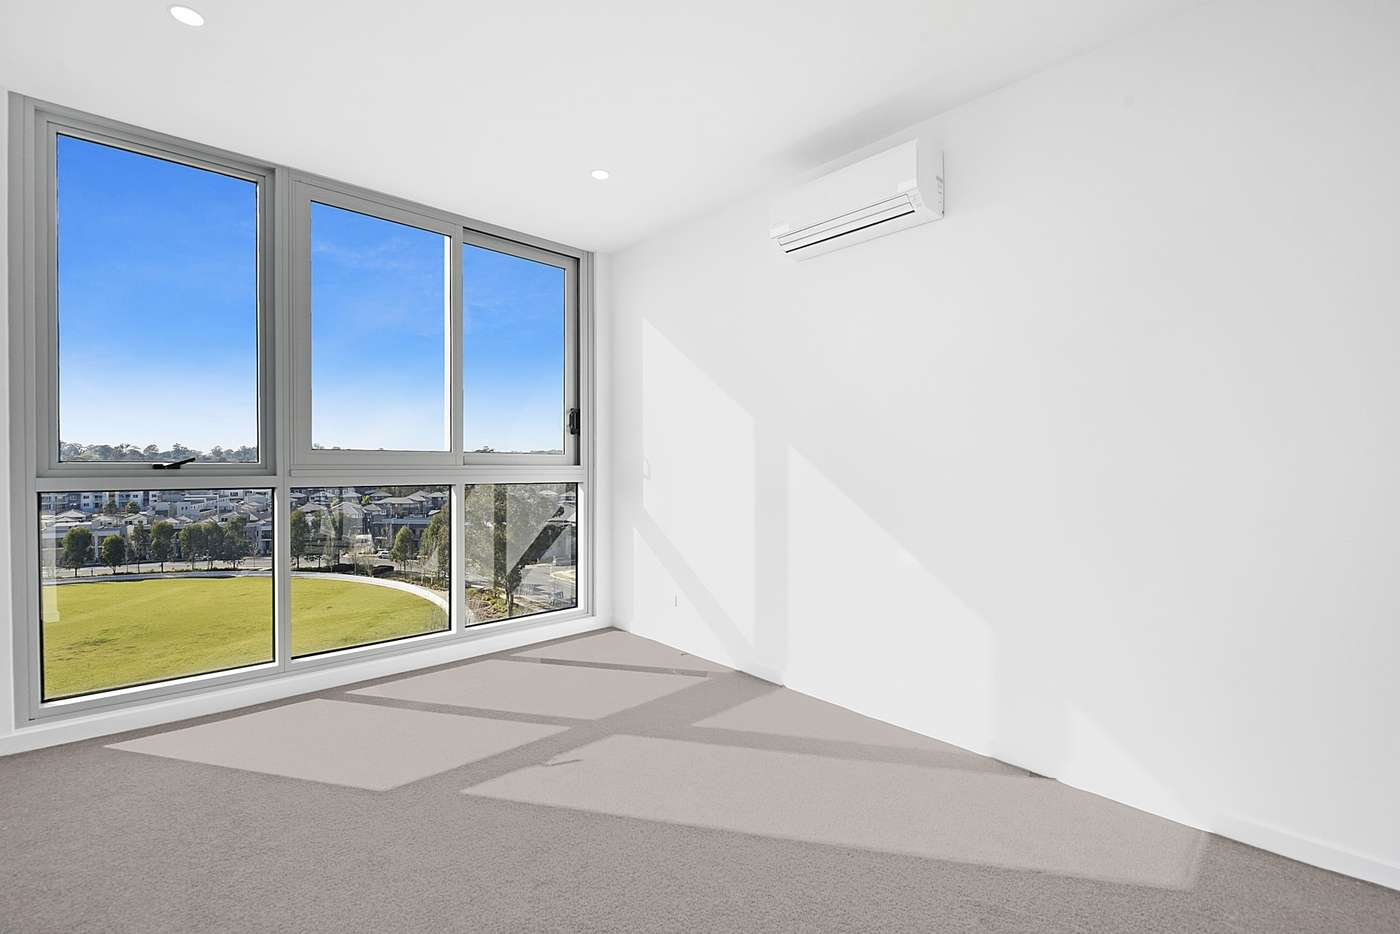 Fifth view of Homely apartment listing, 1006/10 Aviators Way, Penrith NSW 2750